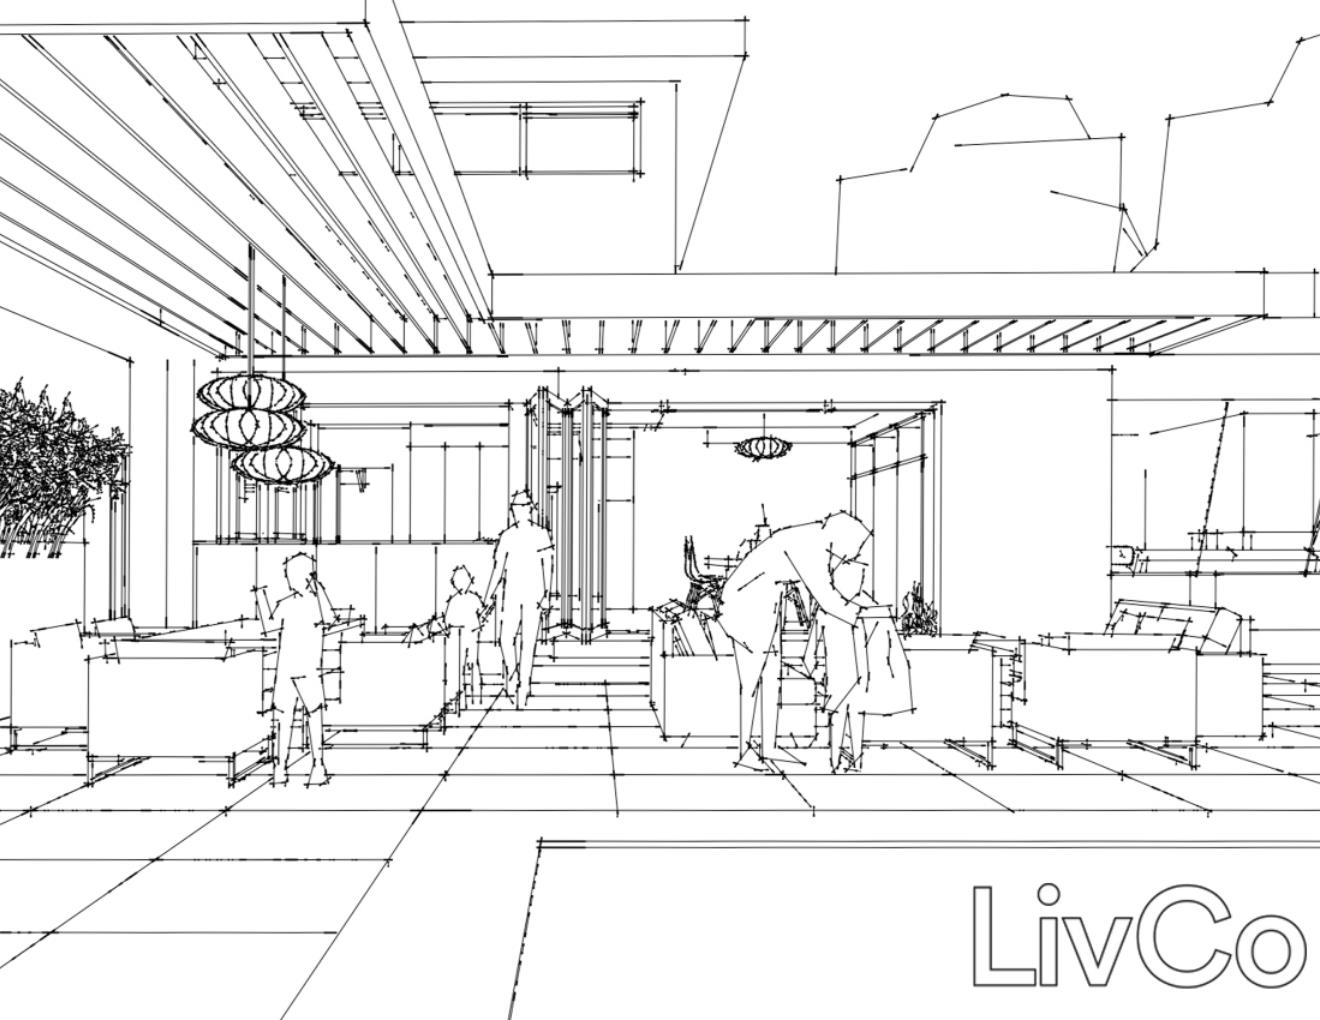 Perspective line drawing of people in outdoor space with trellis style ceiling over portions of the space